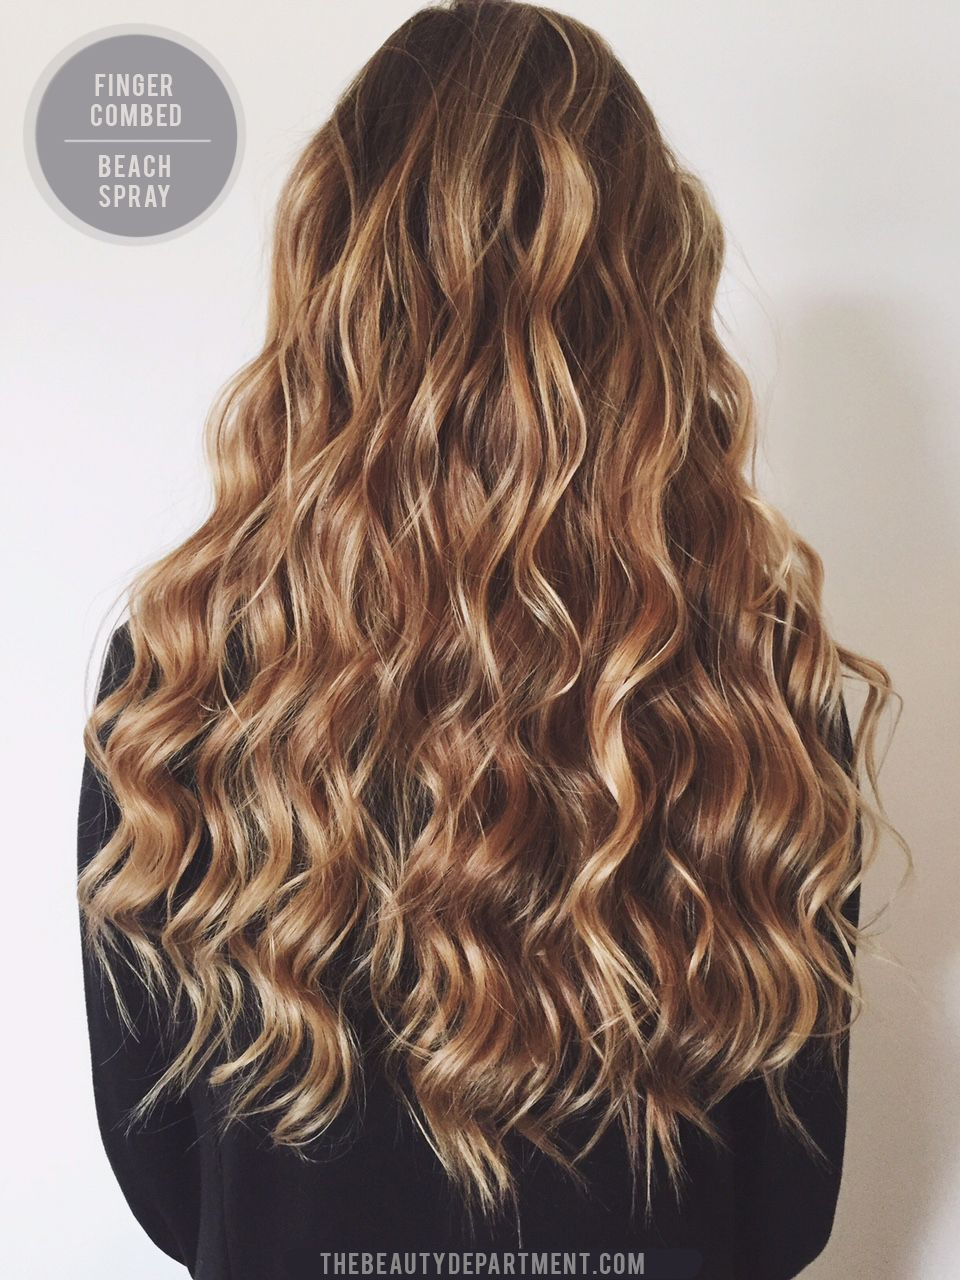 How To Make Loose Curls With A Wand   arxiusarquitectura